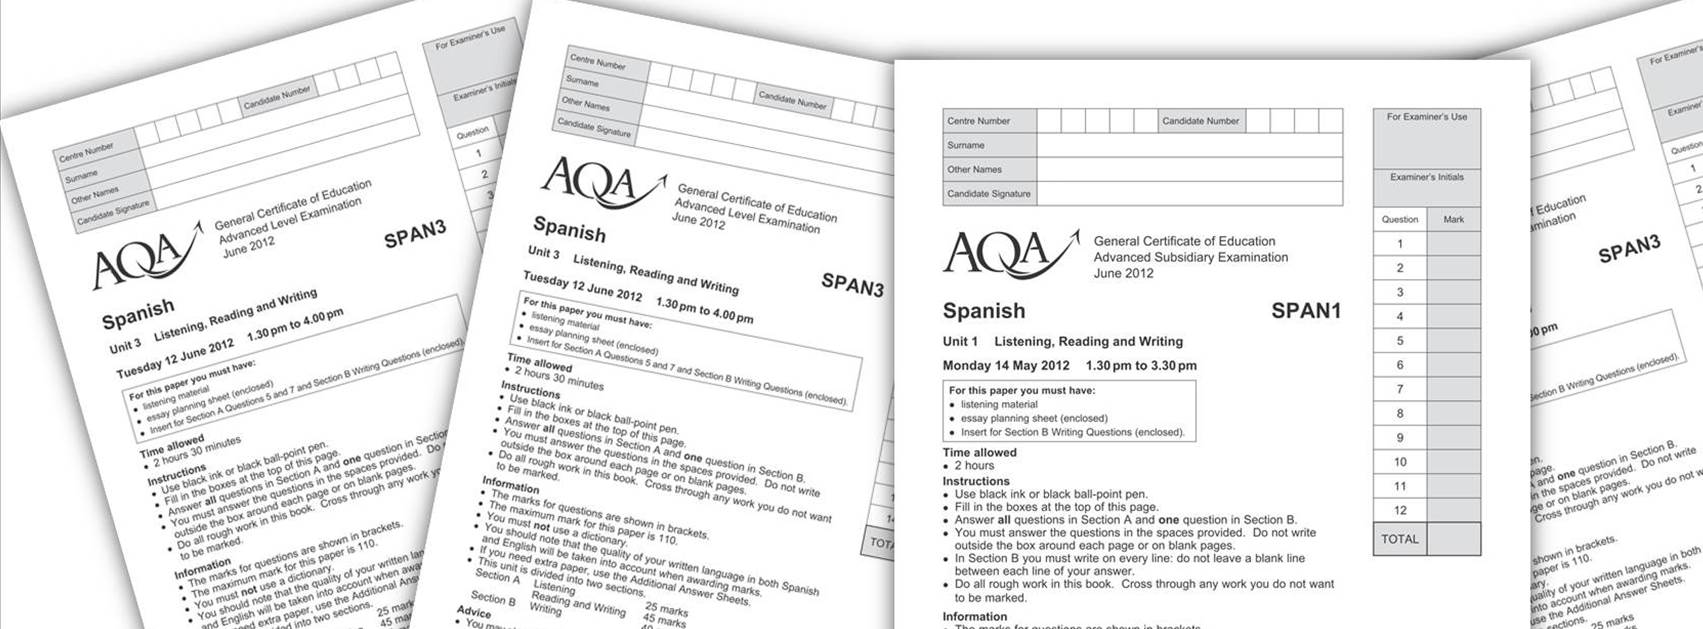 aqa a level creative writing past papers